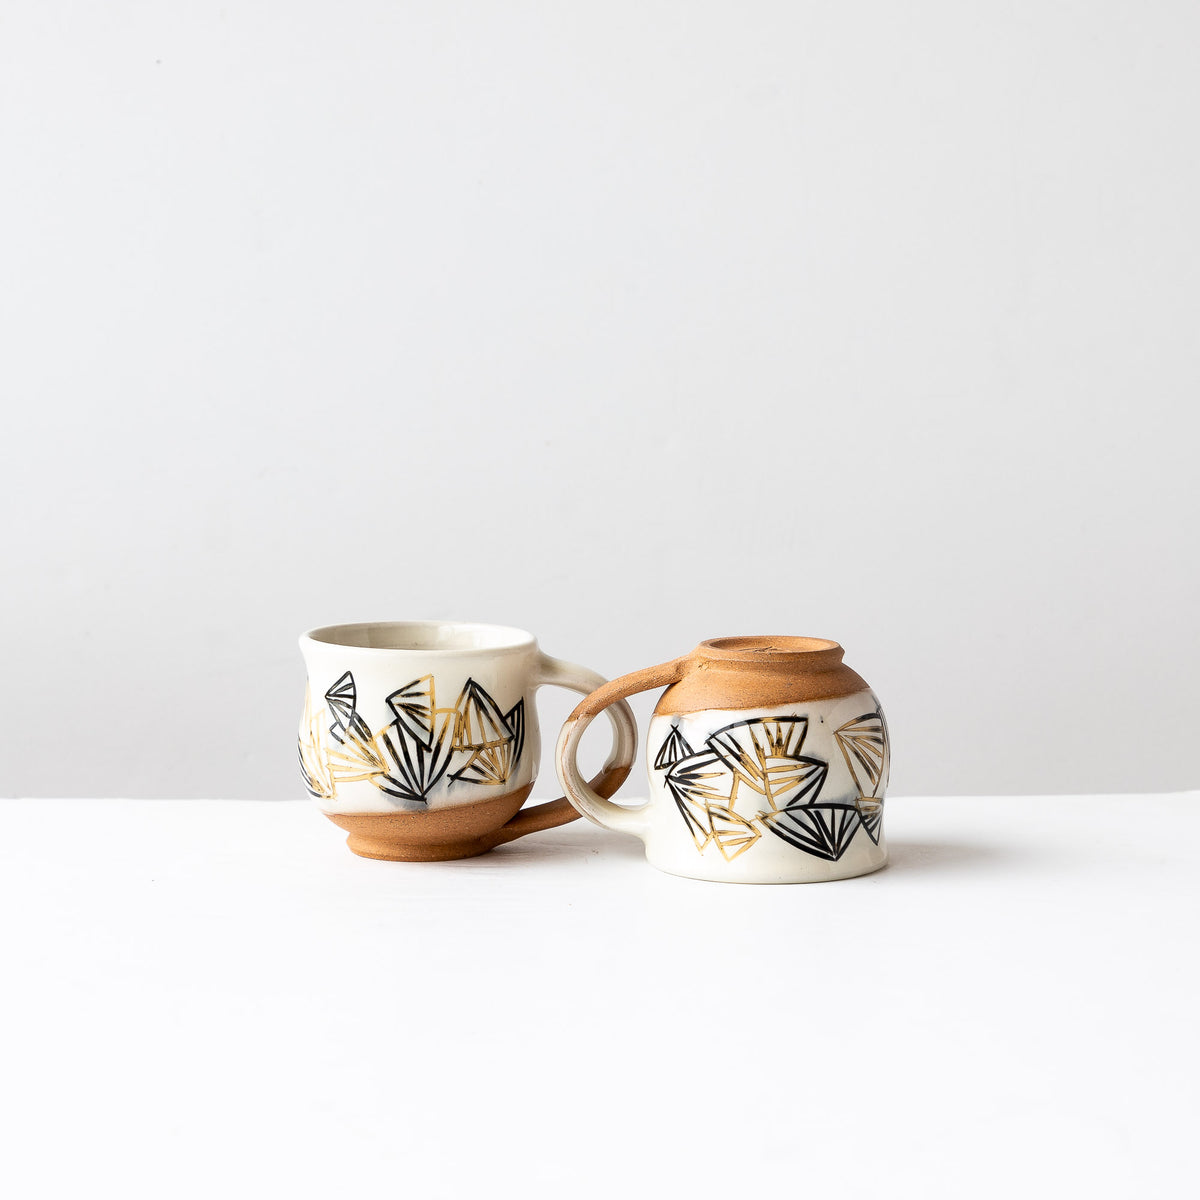 Black & Gold Pattern - Handmade Mishima Espresso Cups - Sold by Chic & Basta